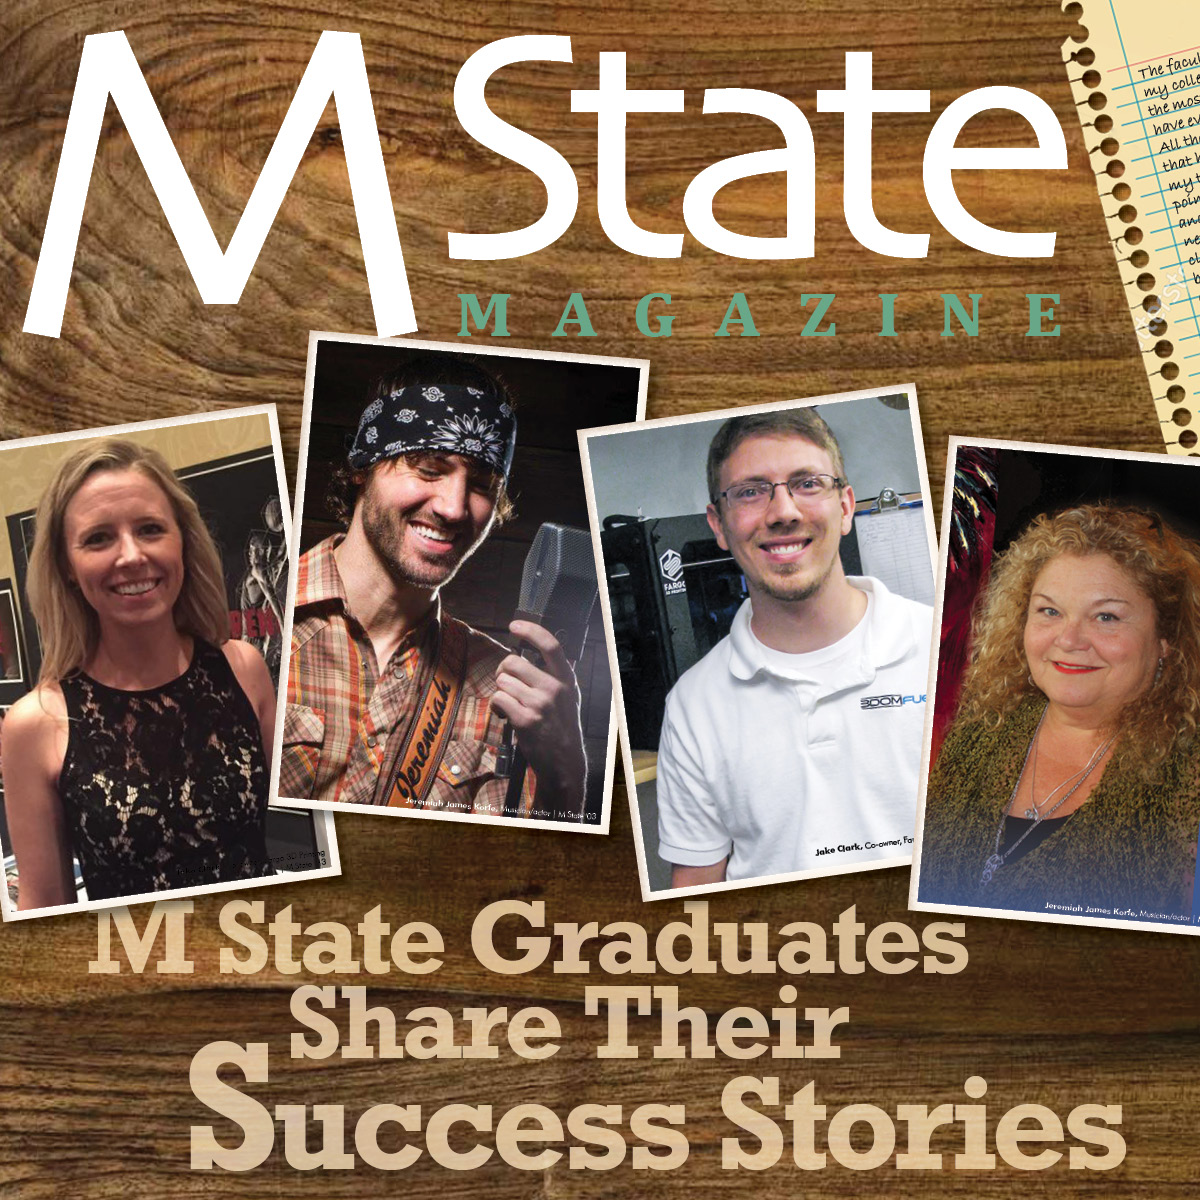 Check out the online version of the M State Magazine!